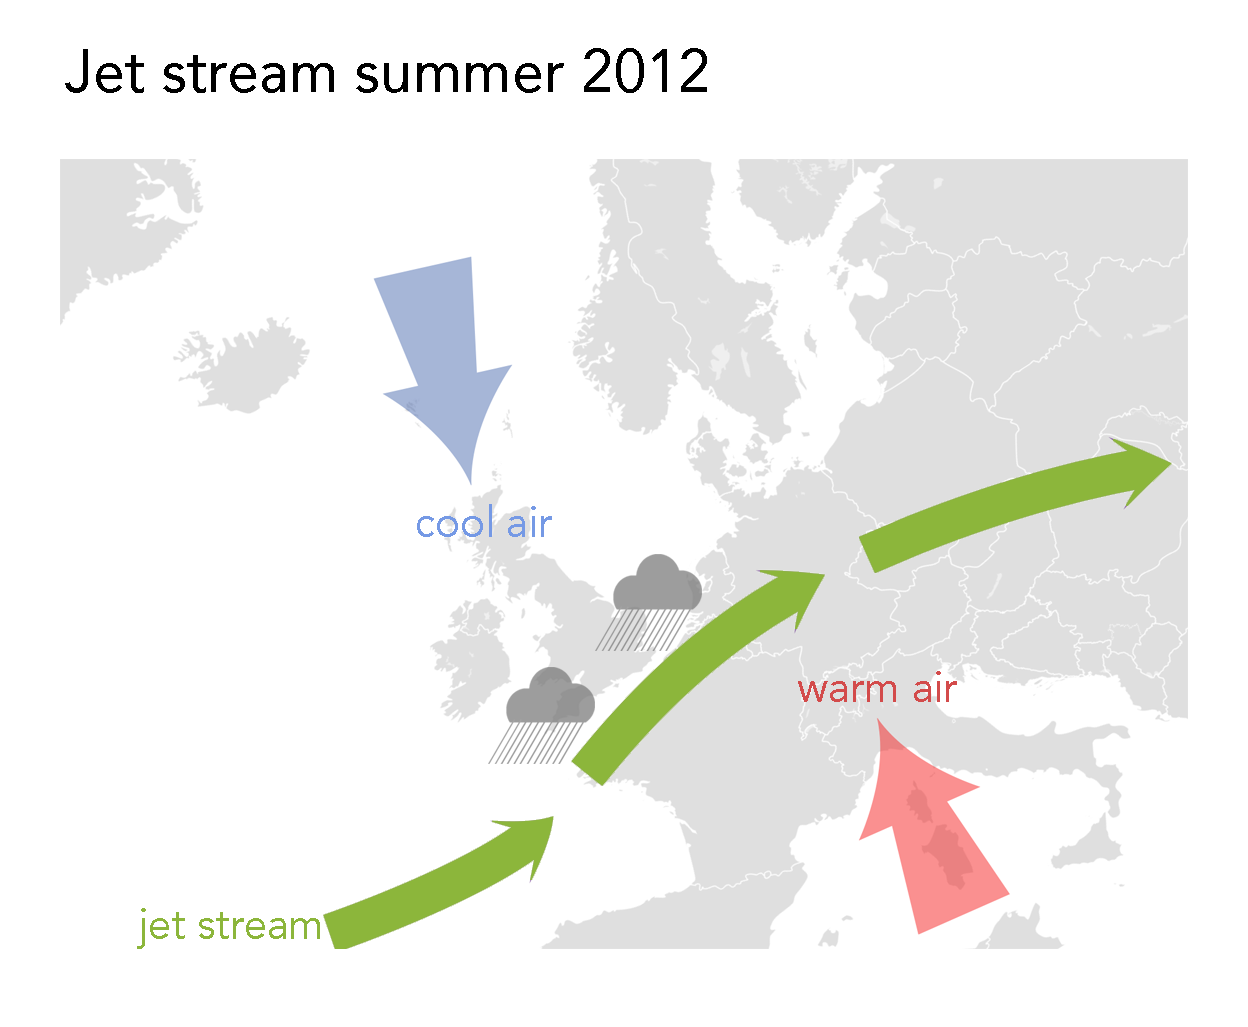 A partial map of Europe. A red arrow coming from the south over Italy represents warm air. A blue arrow coming from the north over the UK represents cool air. A green arrow between the red and the blue represents the jet stream with rain symbols along side